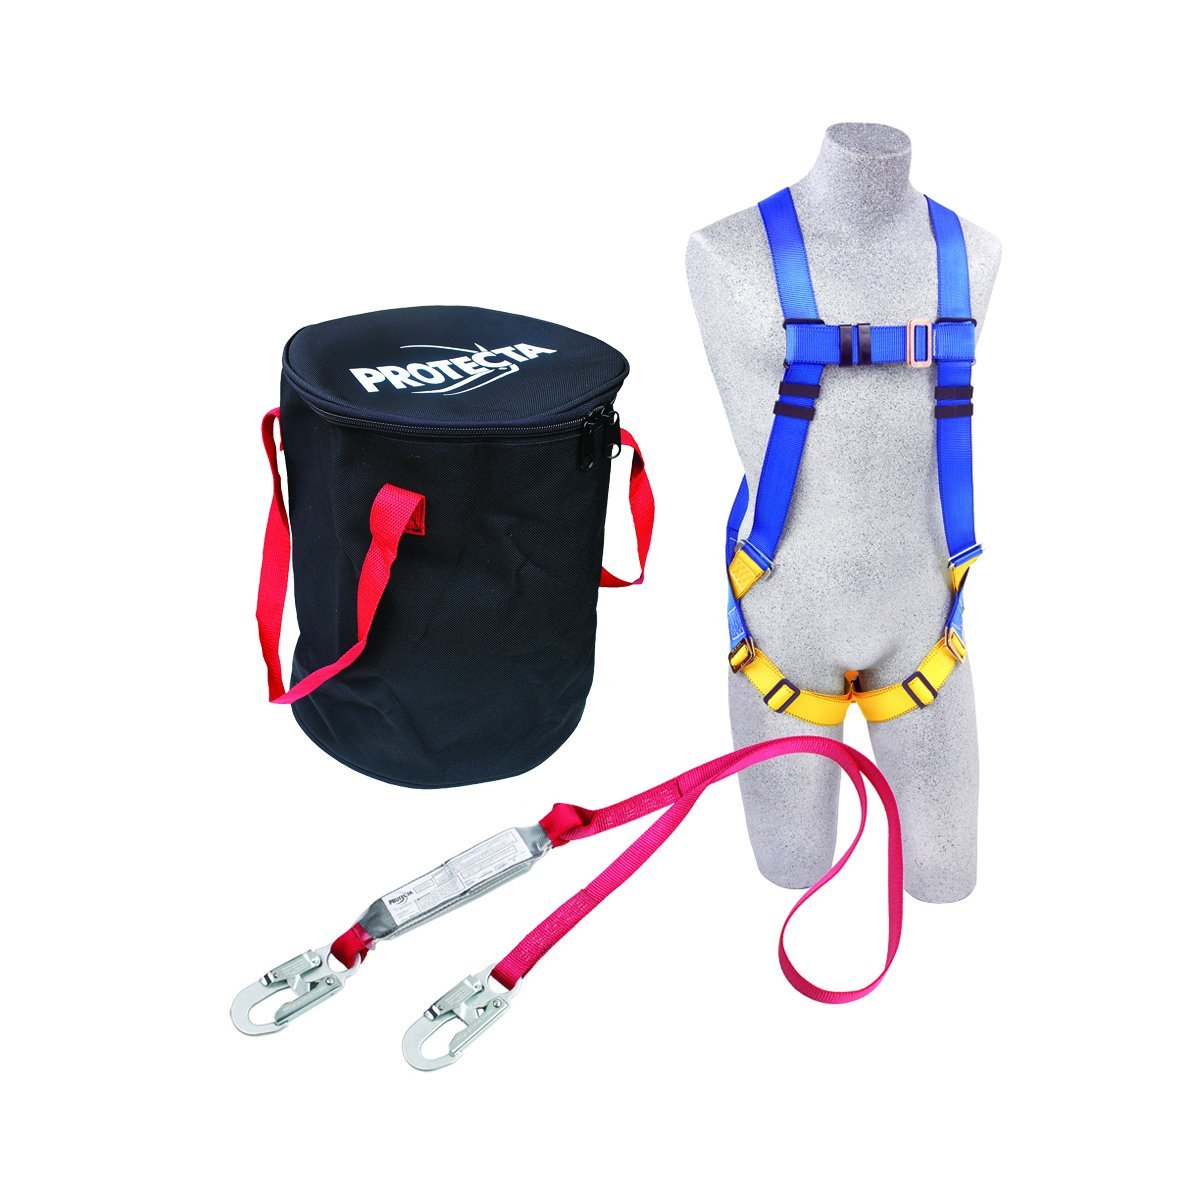 3m Protecta Compliance In A Can Light Roofers Kit 5 Point Roofing Harness Universal Single Leg 6 Shock Absorbing Lanyard 310 Lb 2199802 Fall Arrest Safety